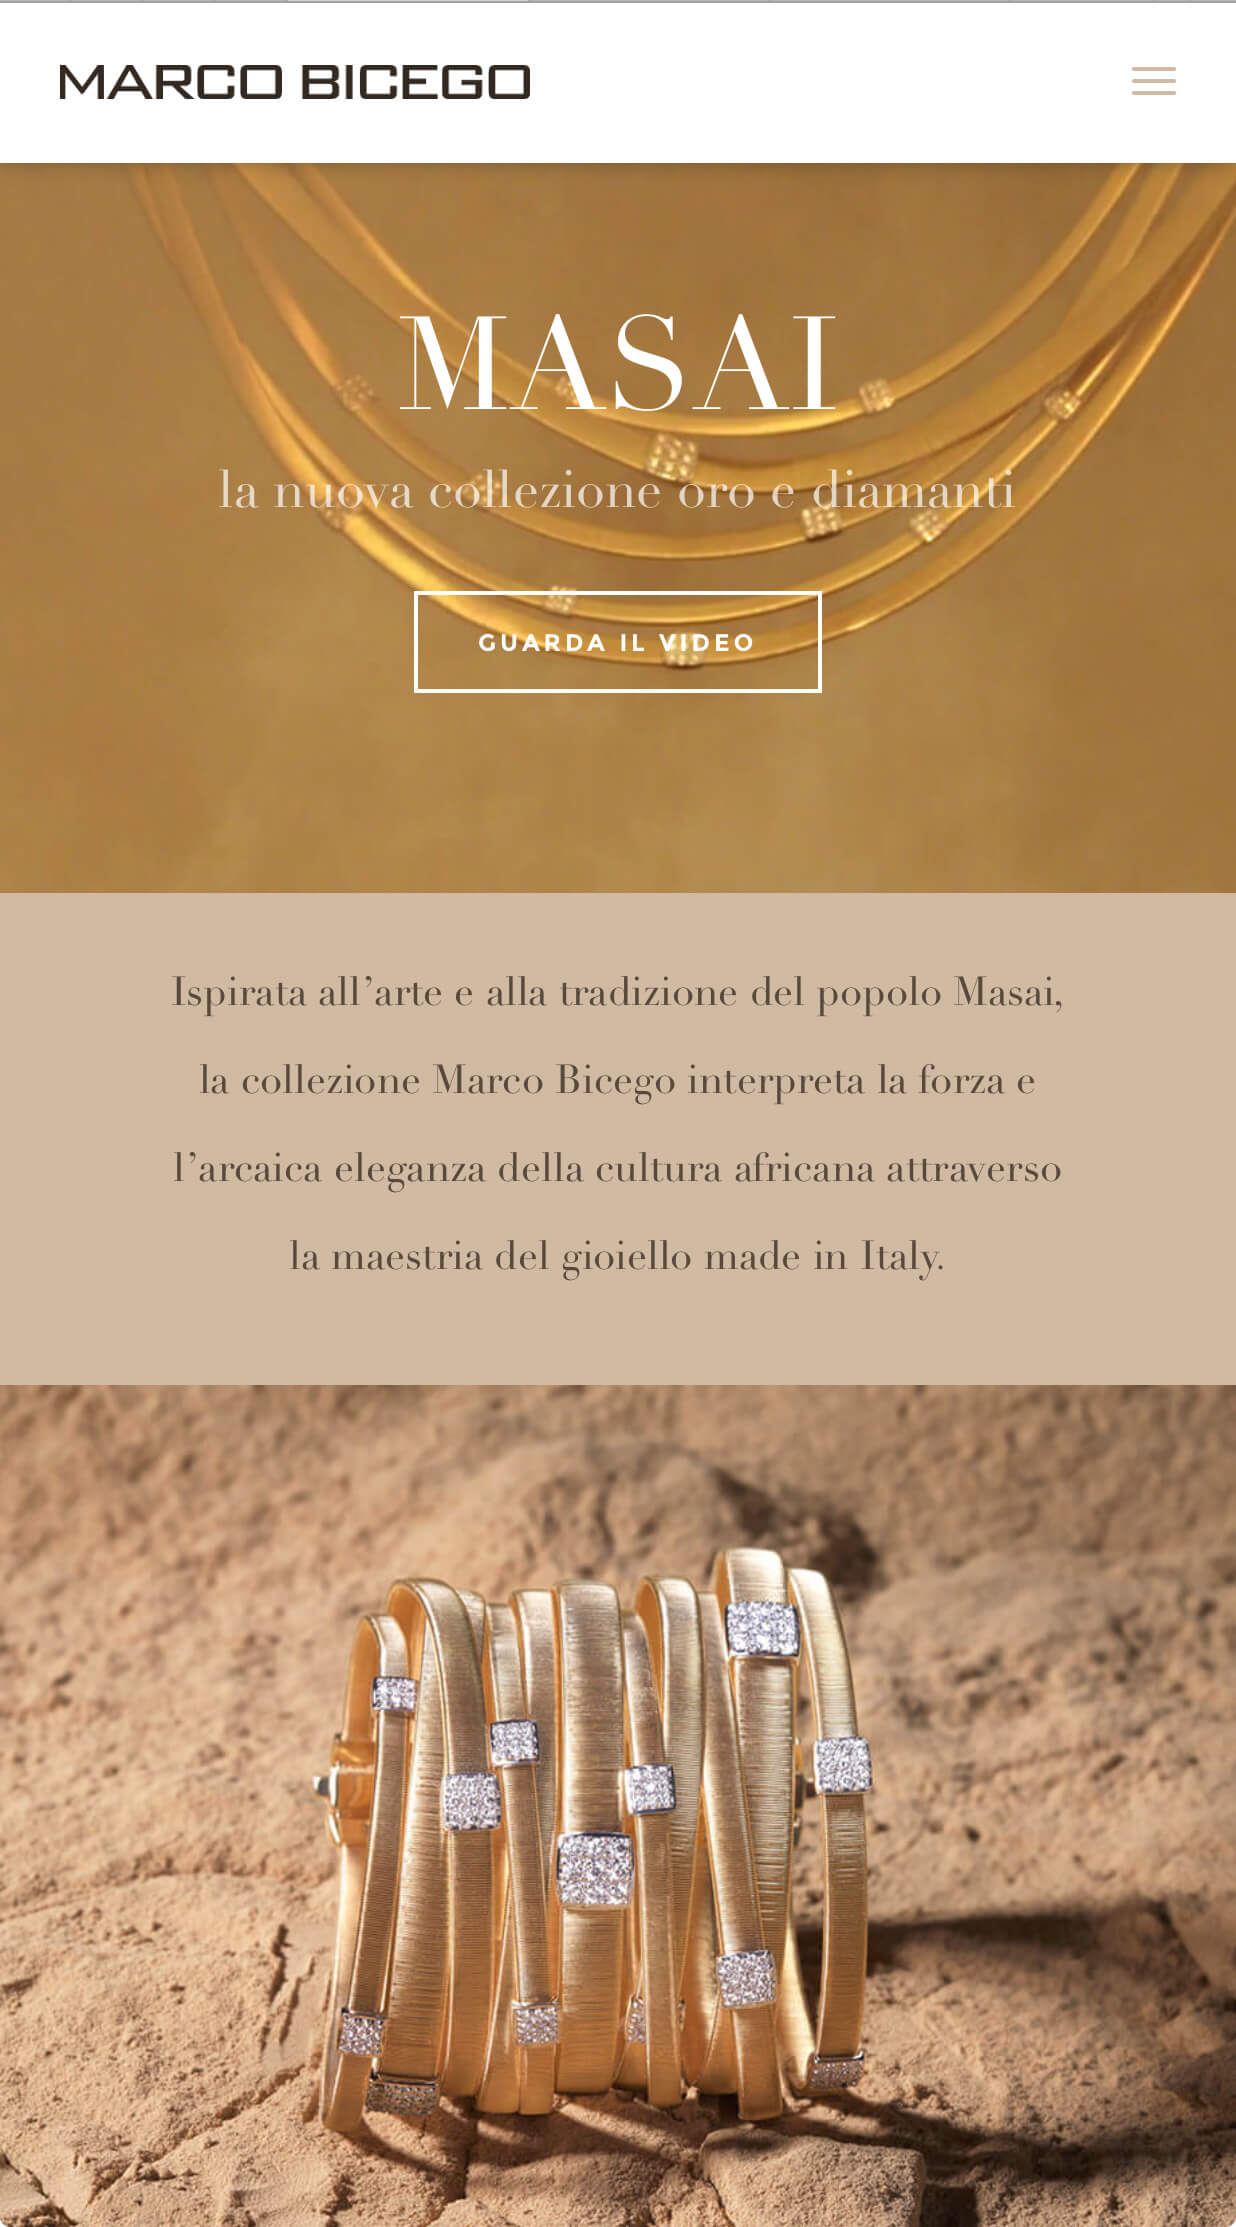 marco bicego masai landing page mobile website